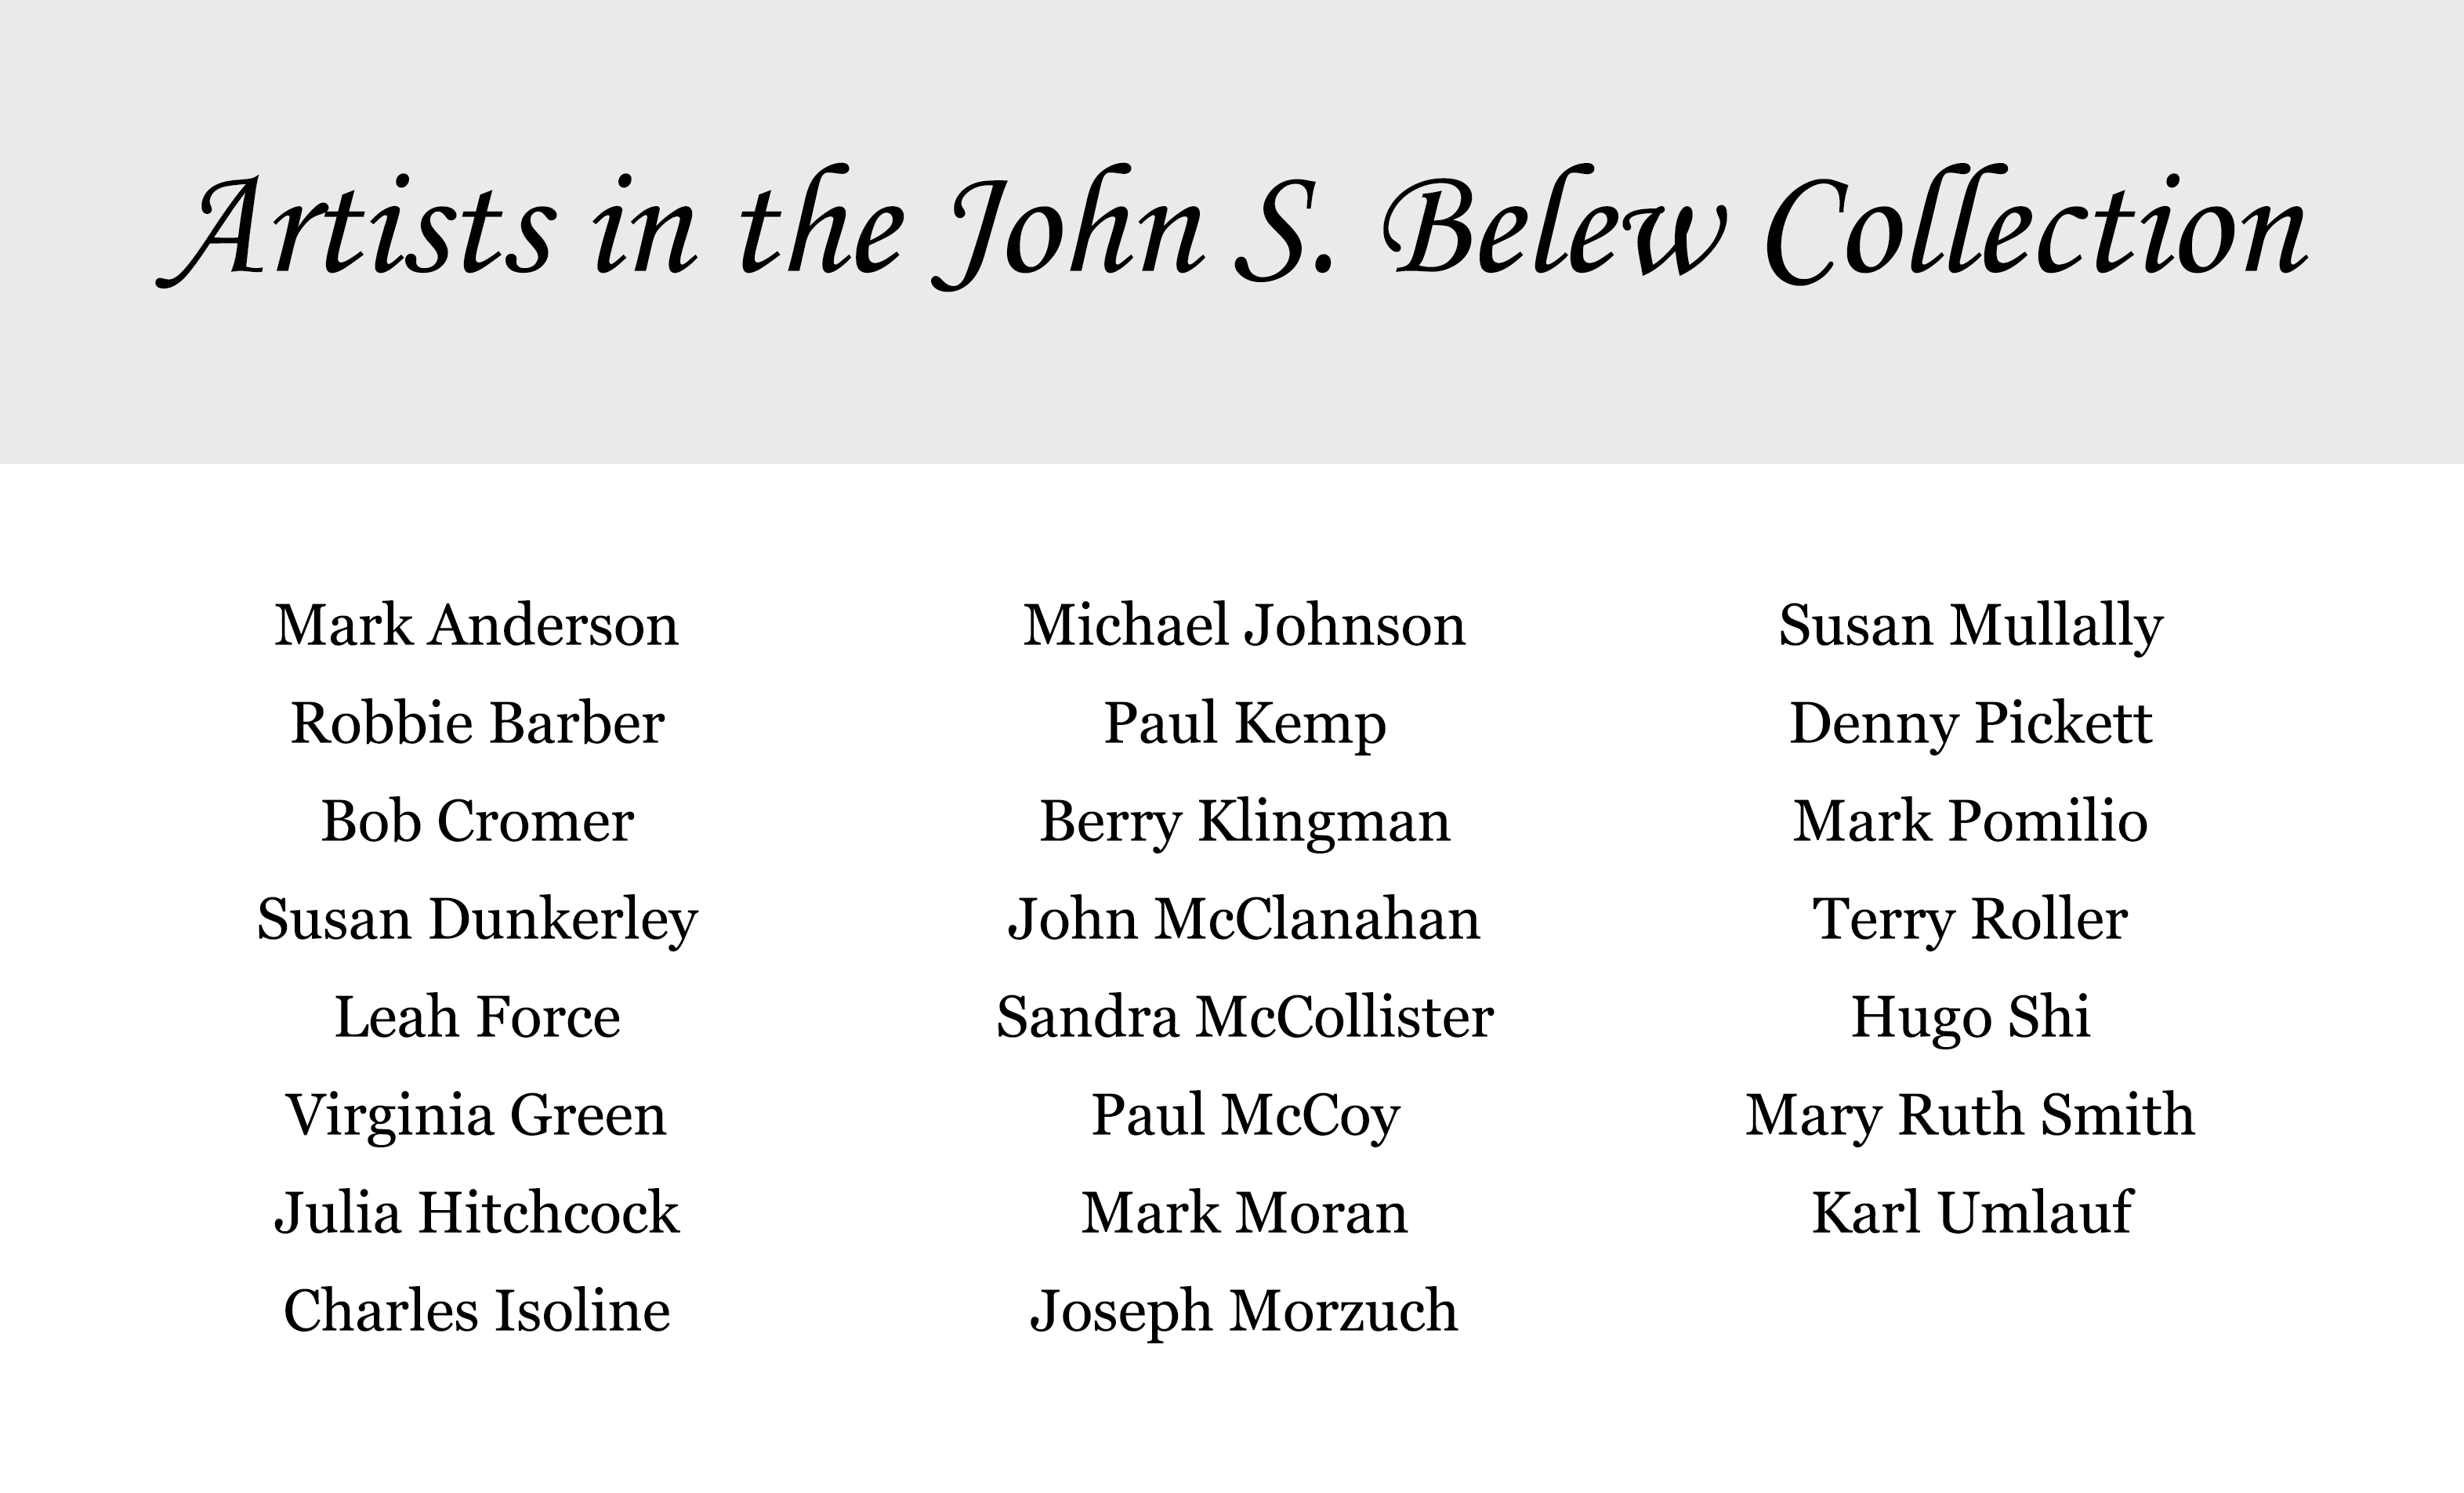 List of artists in the John Belew Collection